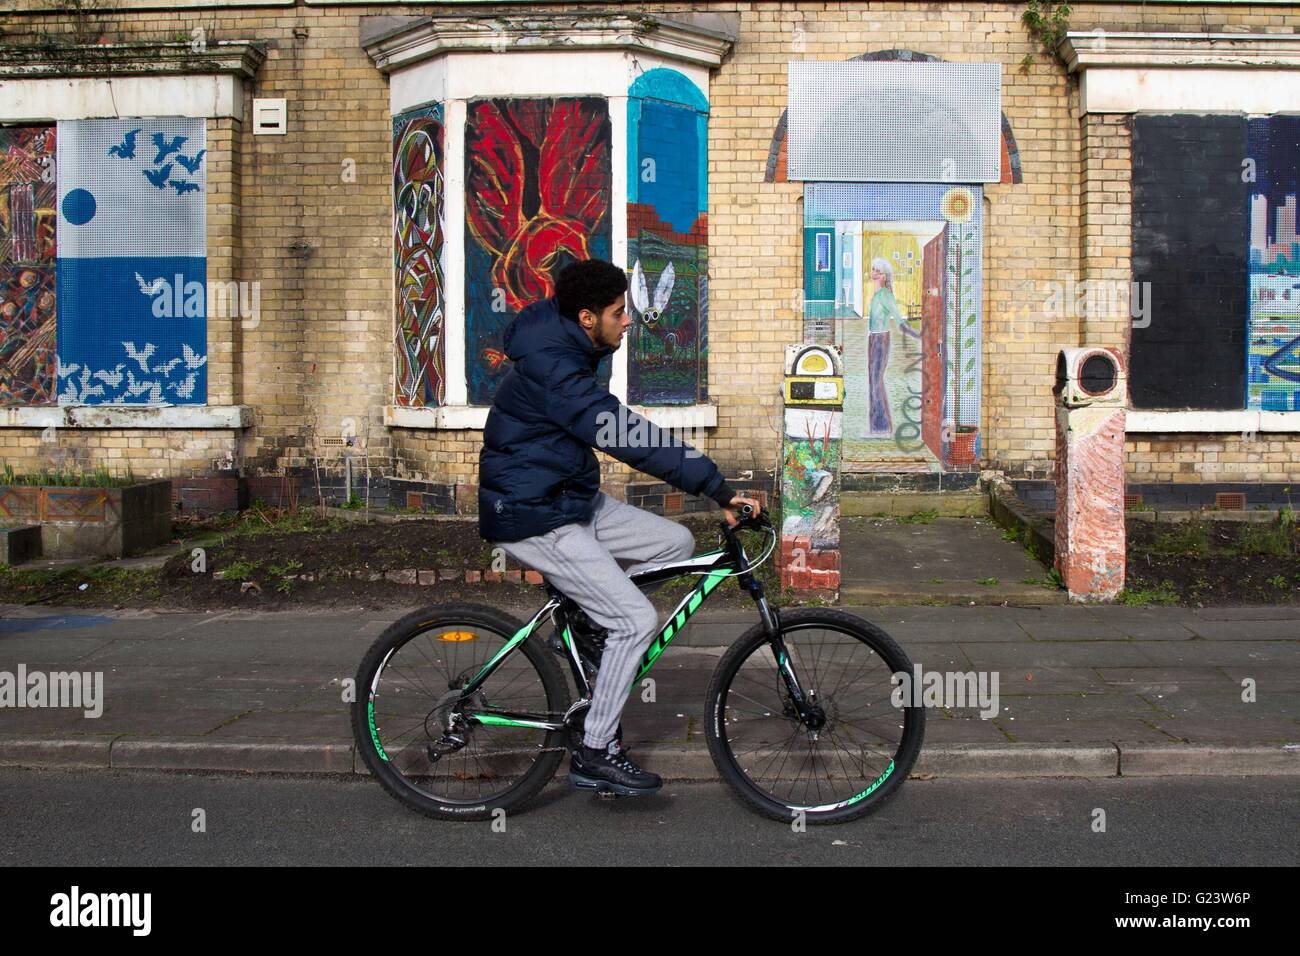 Granby Four Streets area of Toxteth, Liverpool, where Assemble helped the local community renovate homes and gardens. - Stock Image